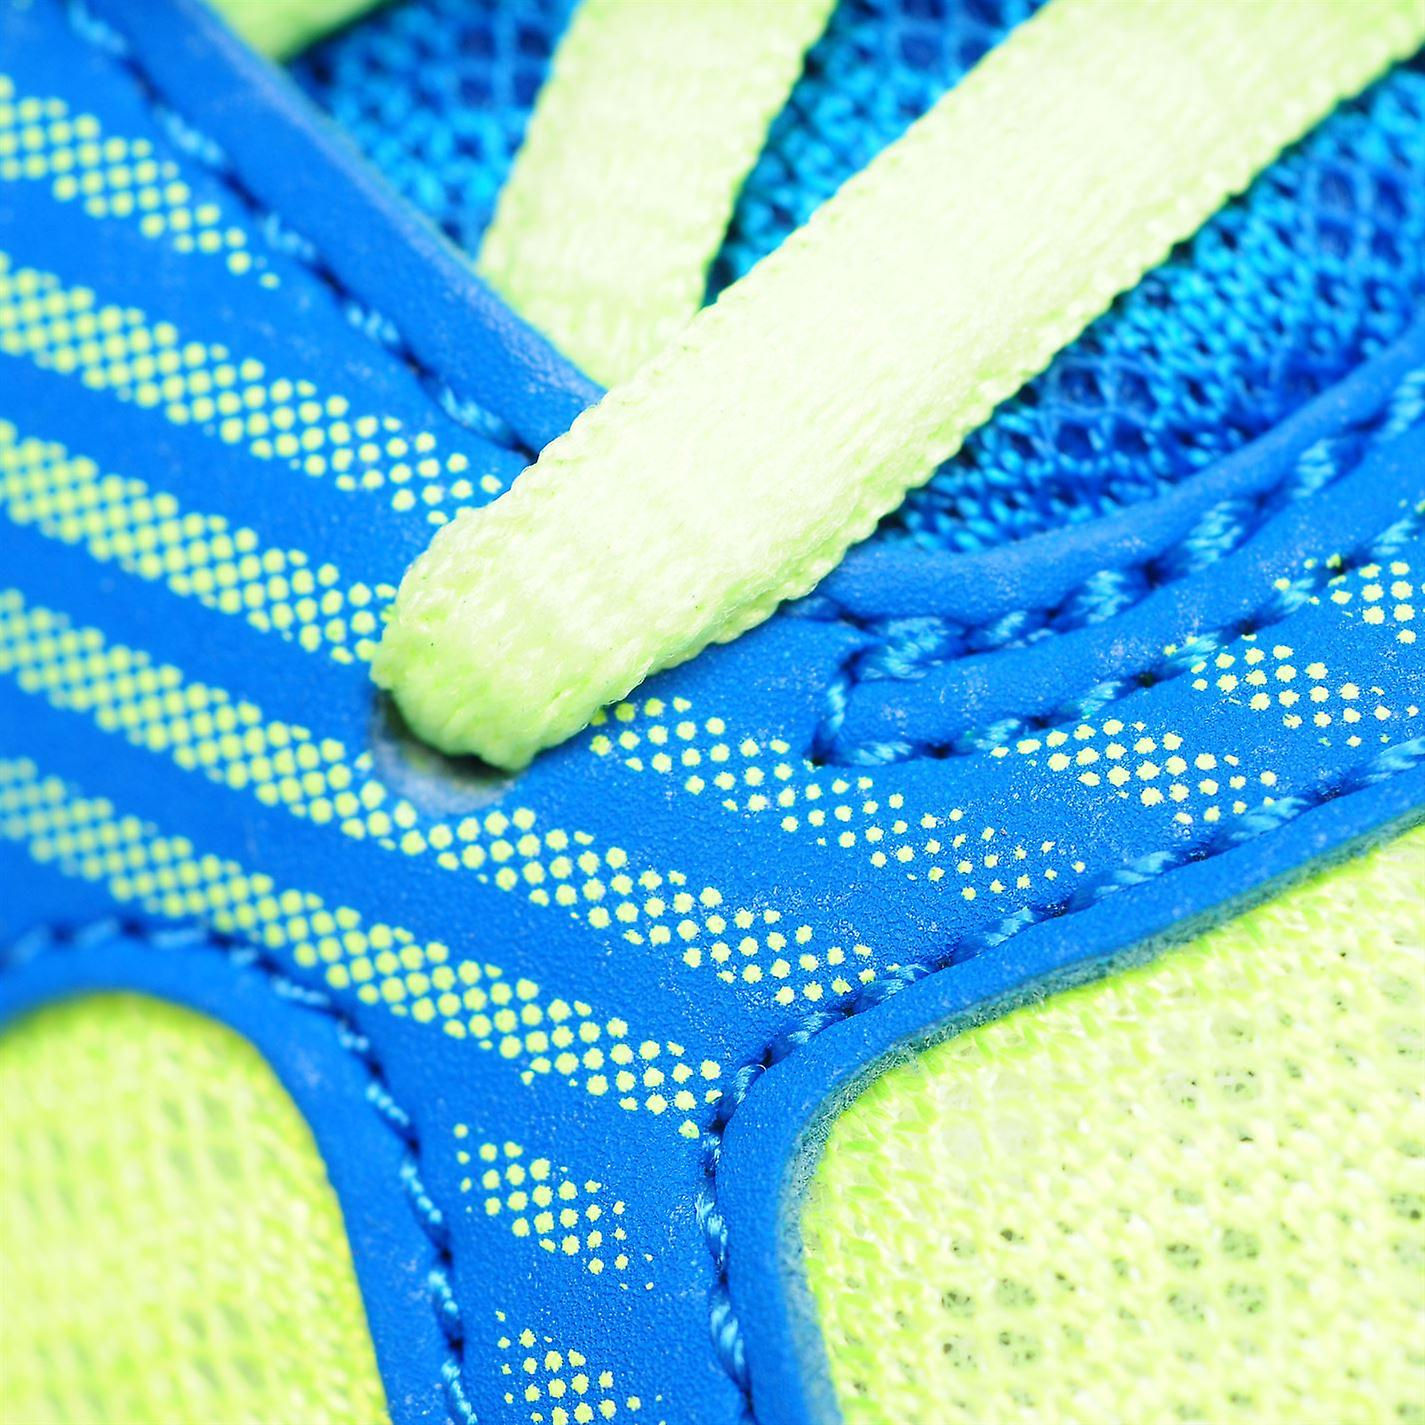 Karrimor Kids Boys Tempo 5 Road Running Shoes Runners Lace Up Mesh Upper